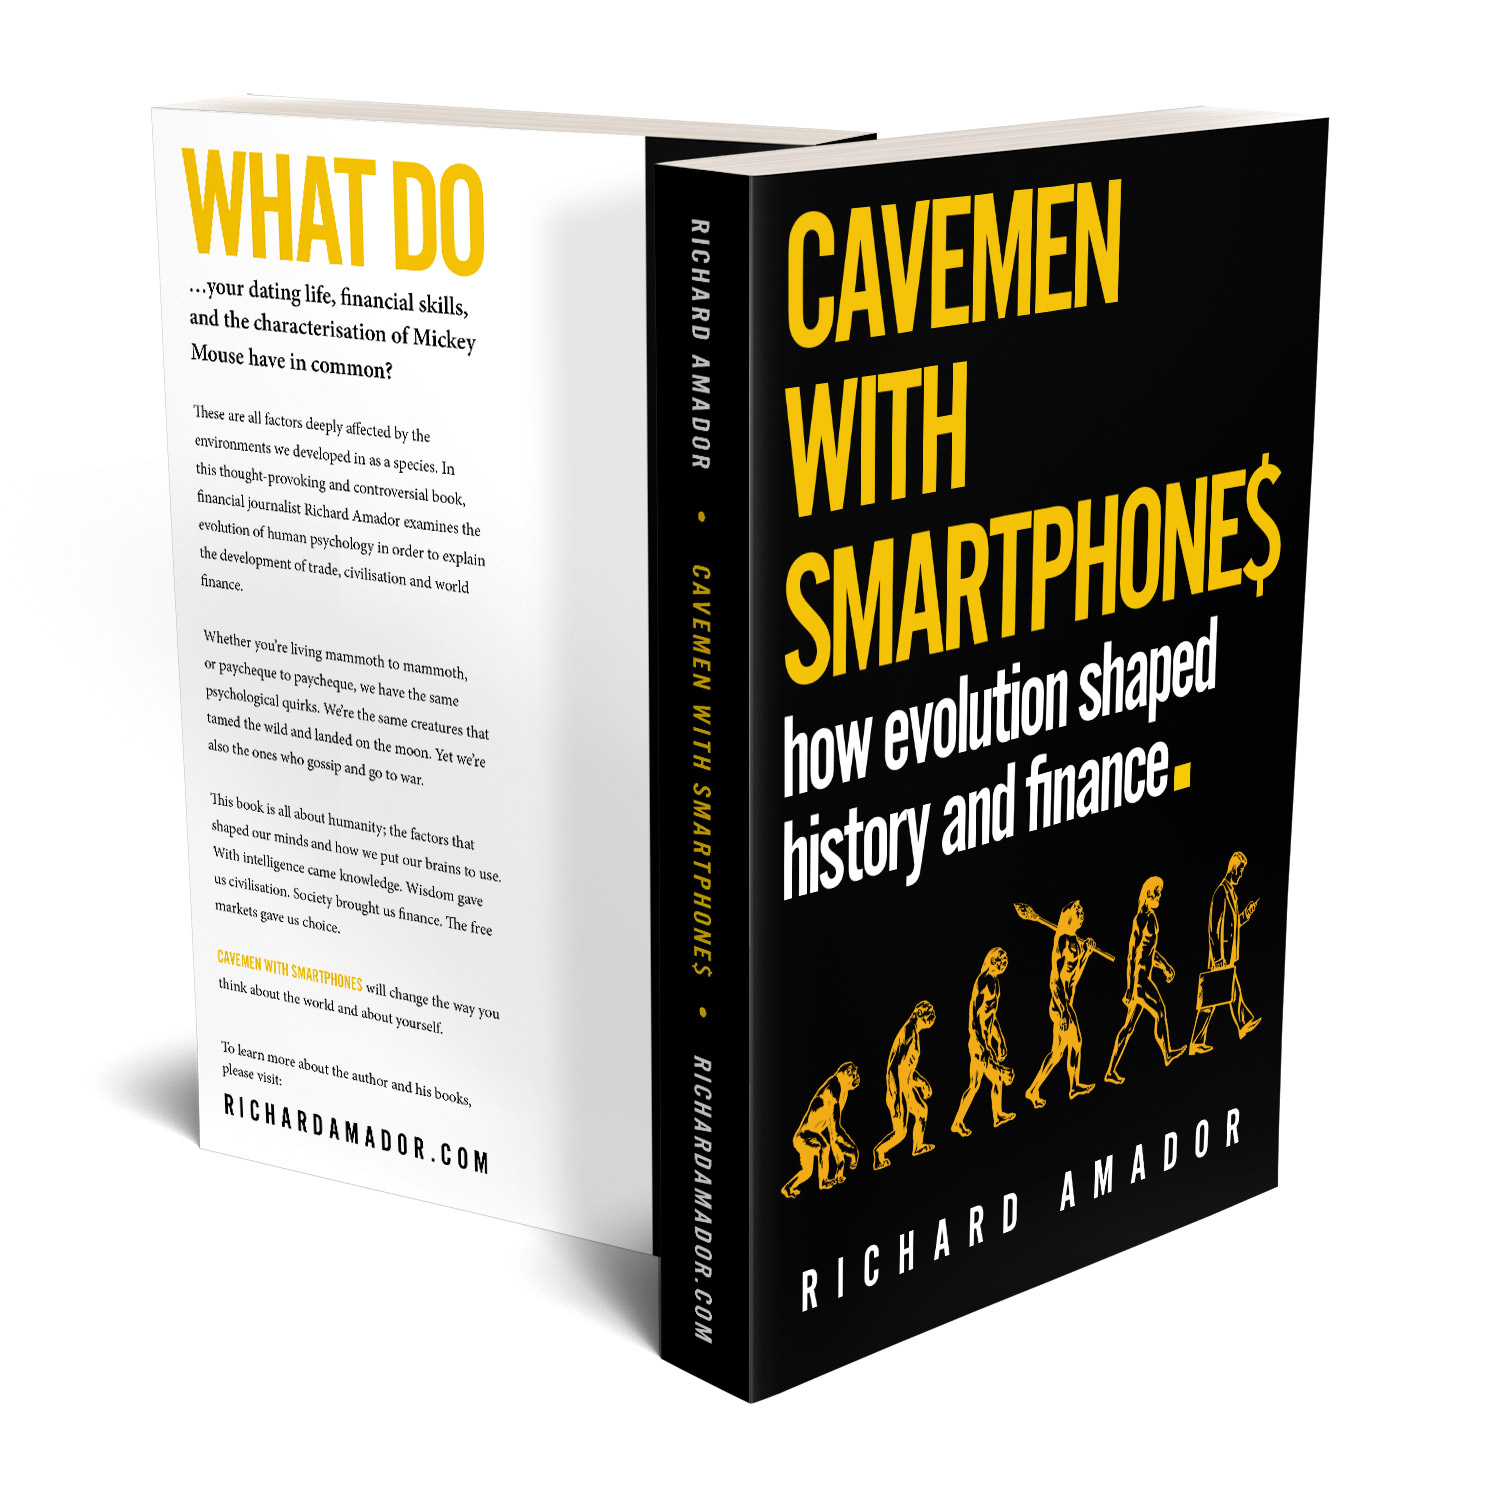 'Cavemen With Smartphones' is tongue-in-cheek meditation on the links between evolution, history and finance. The author is Richard Amador. The book cover & interior design is by Mark Thomas. To learn more about what Mark could do for your book, please visit coverness.com.